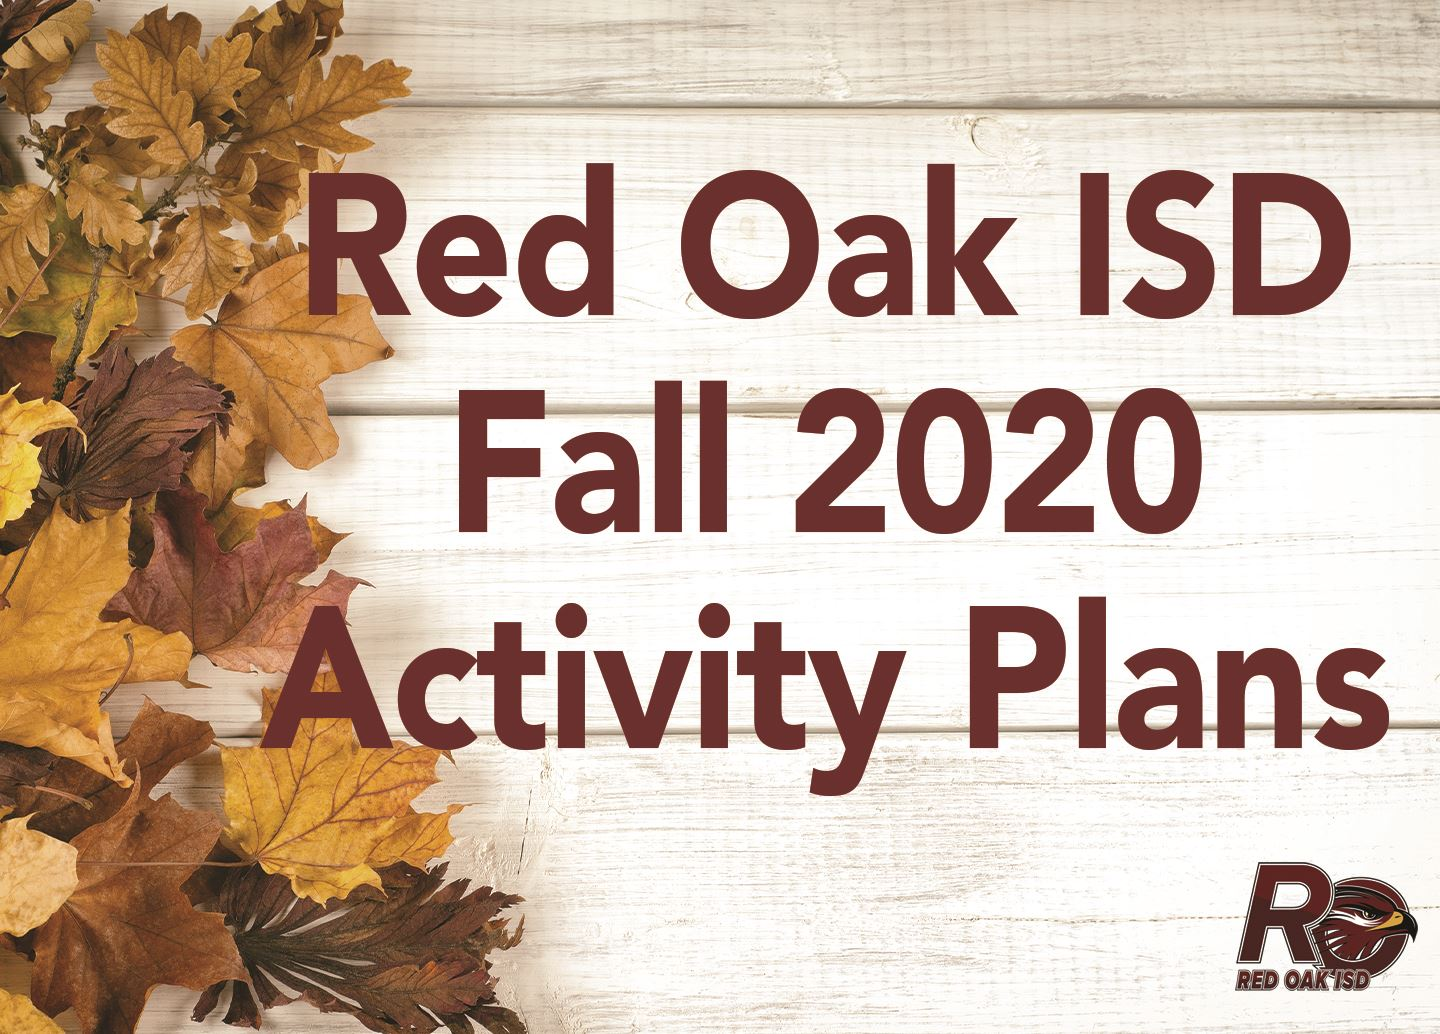 Red Oak ISD Fall 2020 Activity Plans